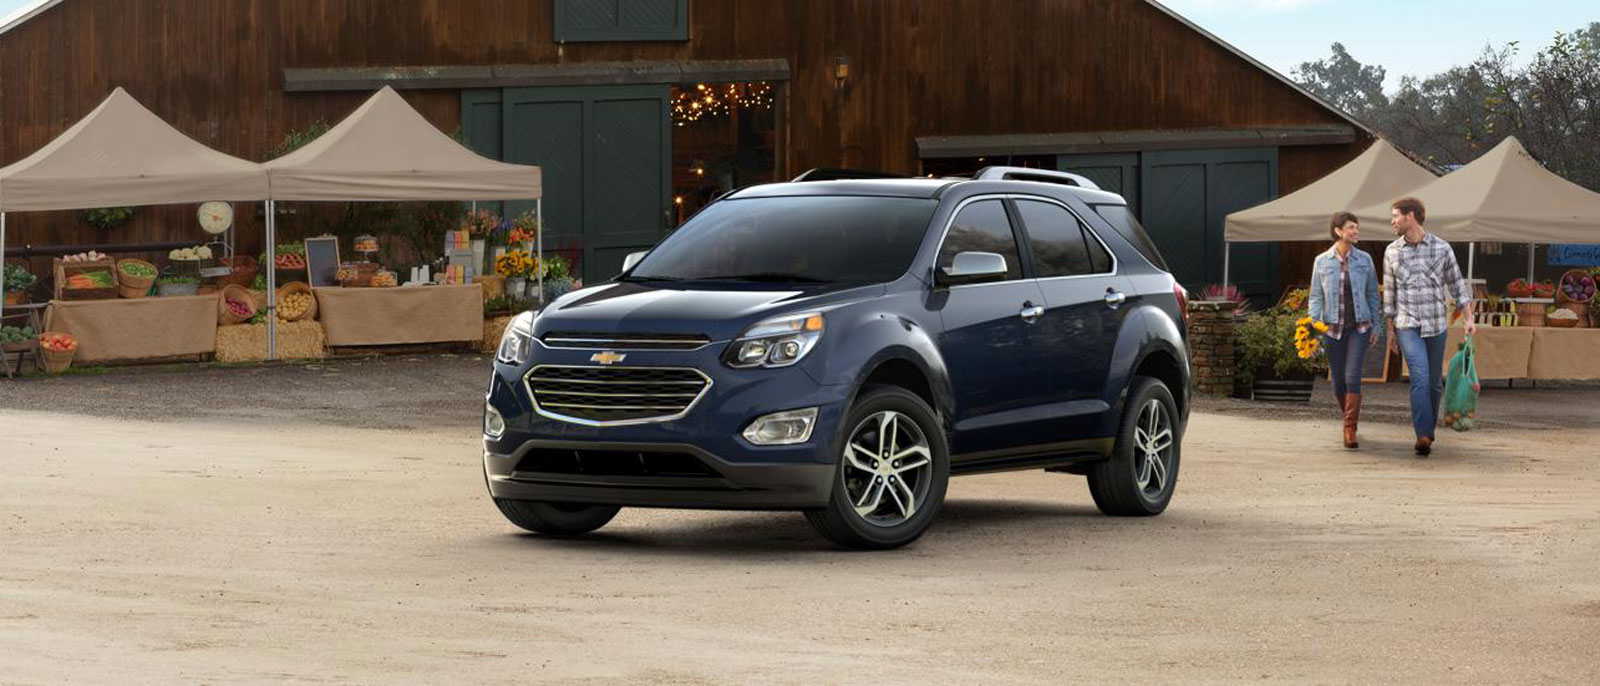 explore in style with the 2017 chevrolet equinox. Black Bedroom Furniture Sets. Home Design Ideas